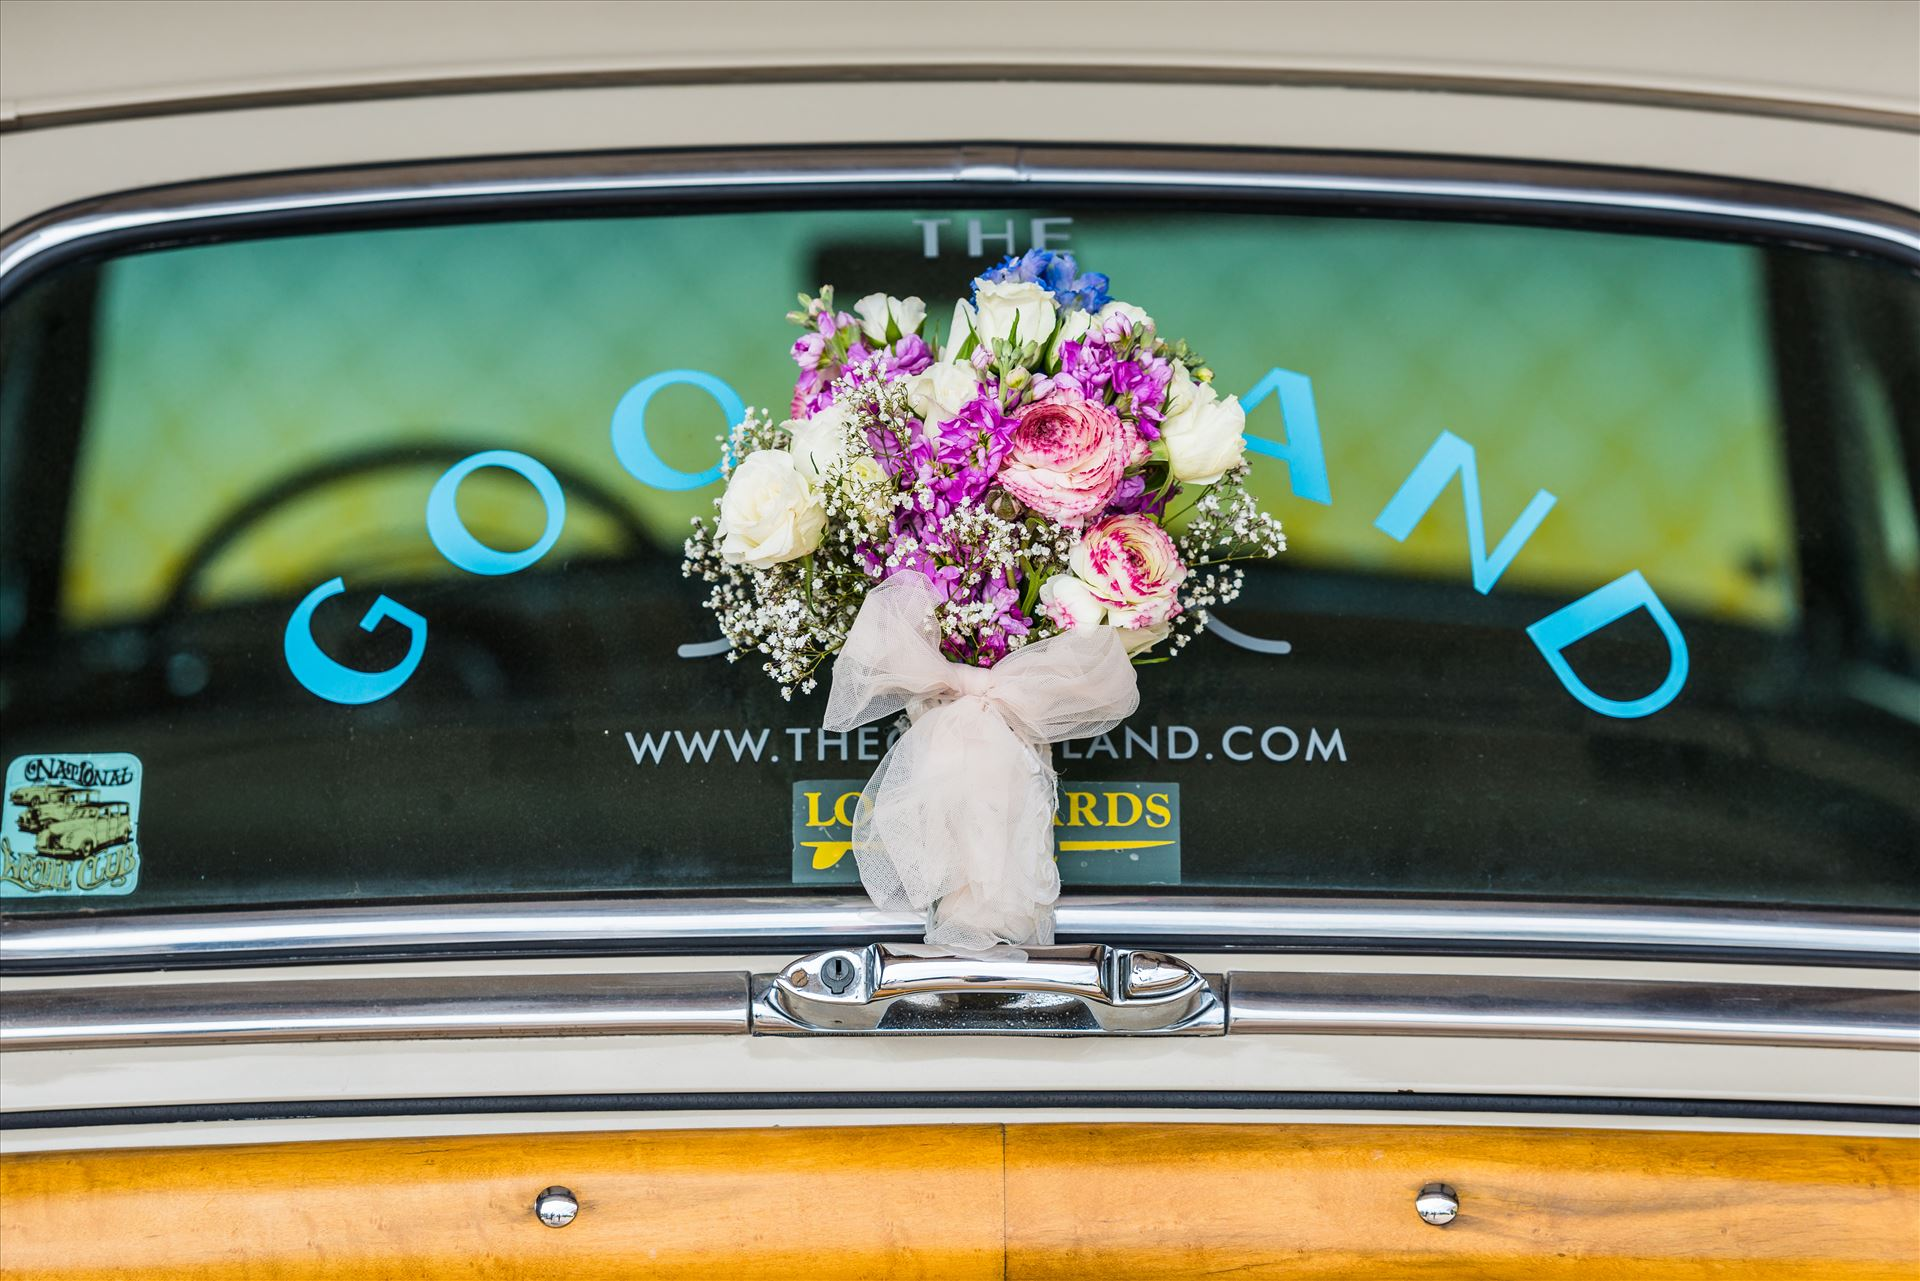 Kimpton Goodland Hotel Santa Barbara Goleta California Bride's Bouquet -  by Sarah Williams